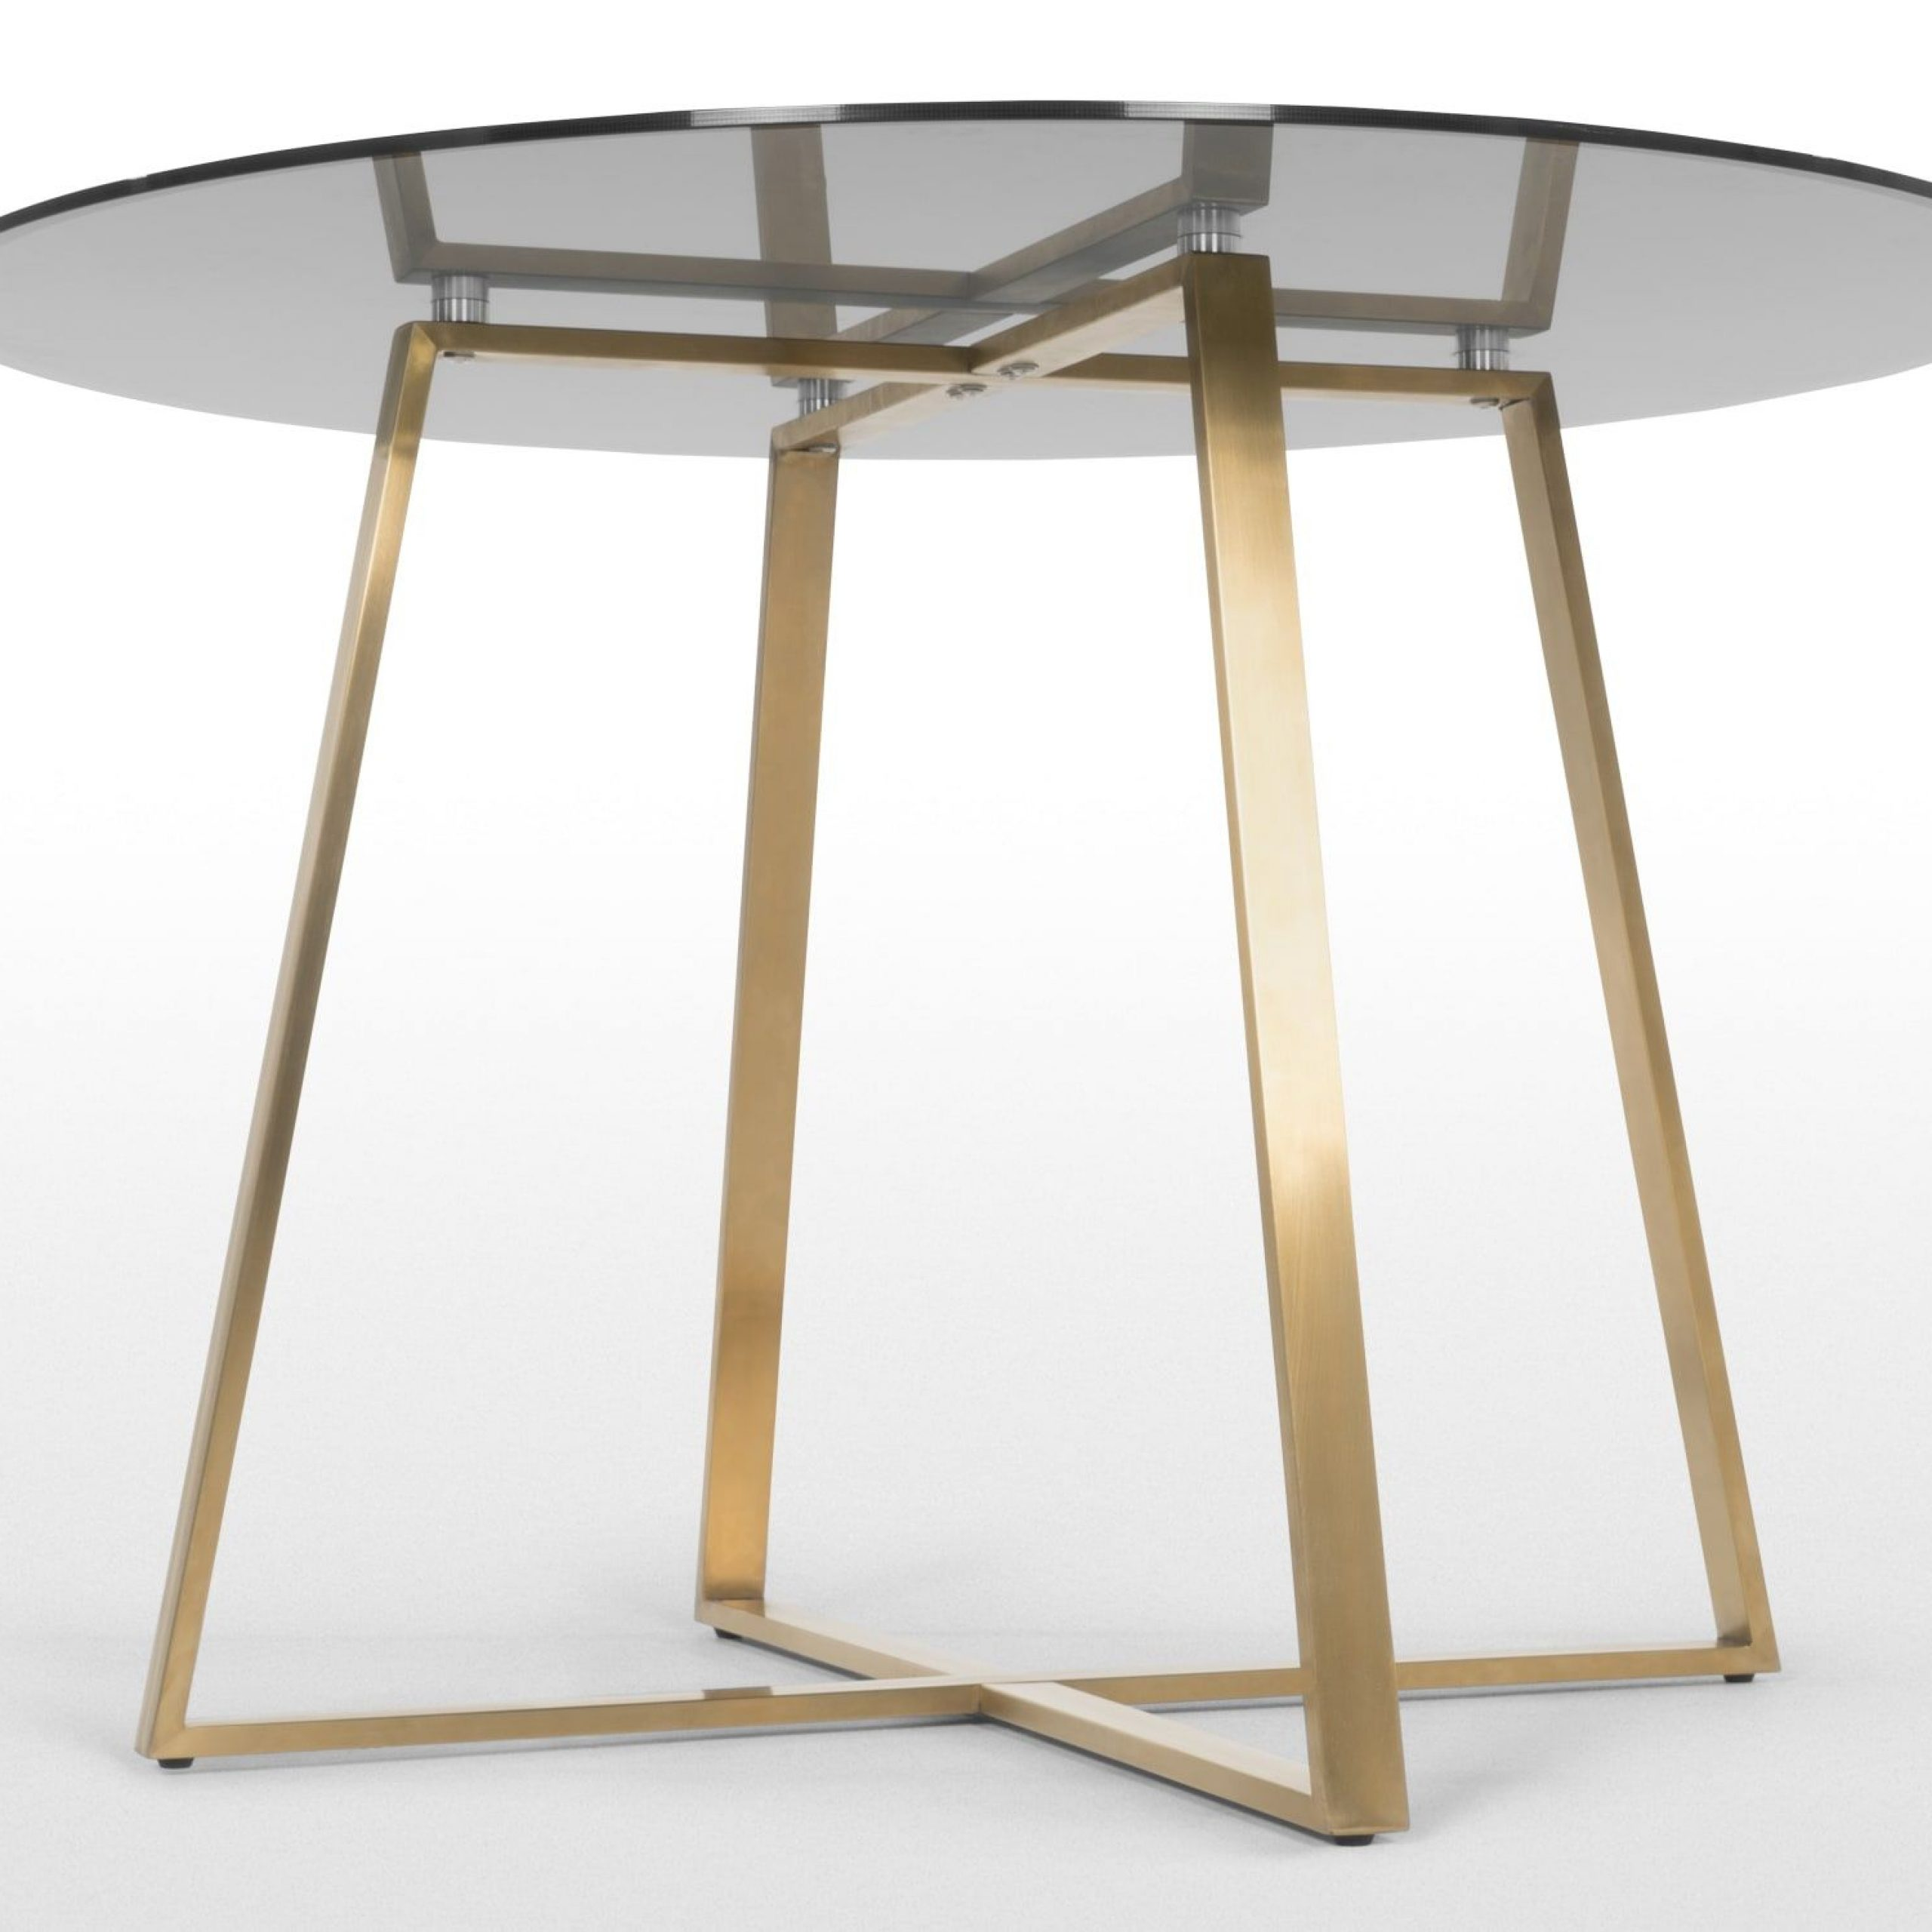 Haku 4 Seat Round Large Dining Table, Brass And Smoked Glass With Regard To Most Recent Montalvo Round Dining Tables (View 8 of 25)